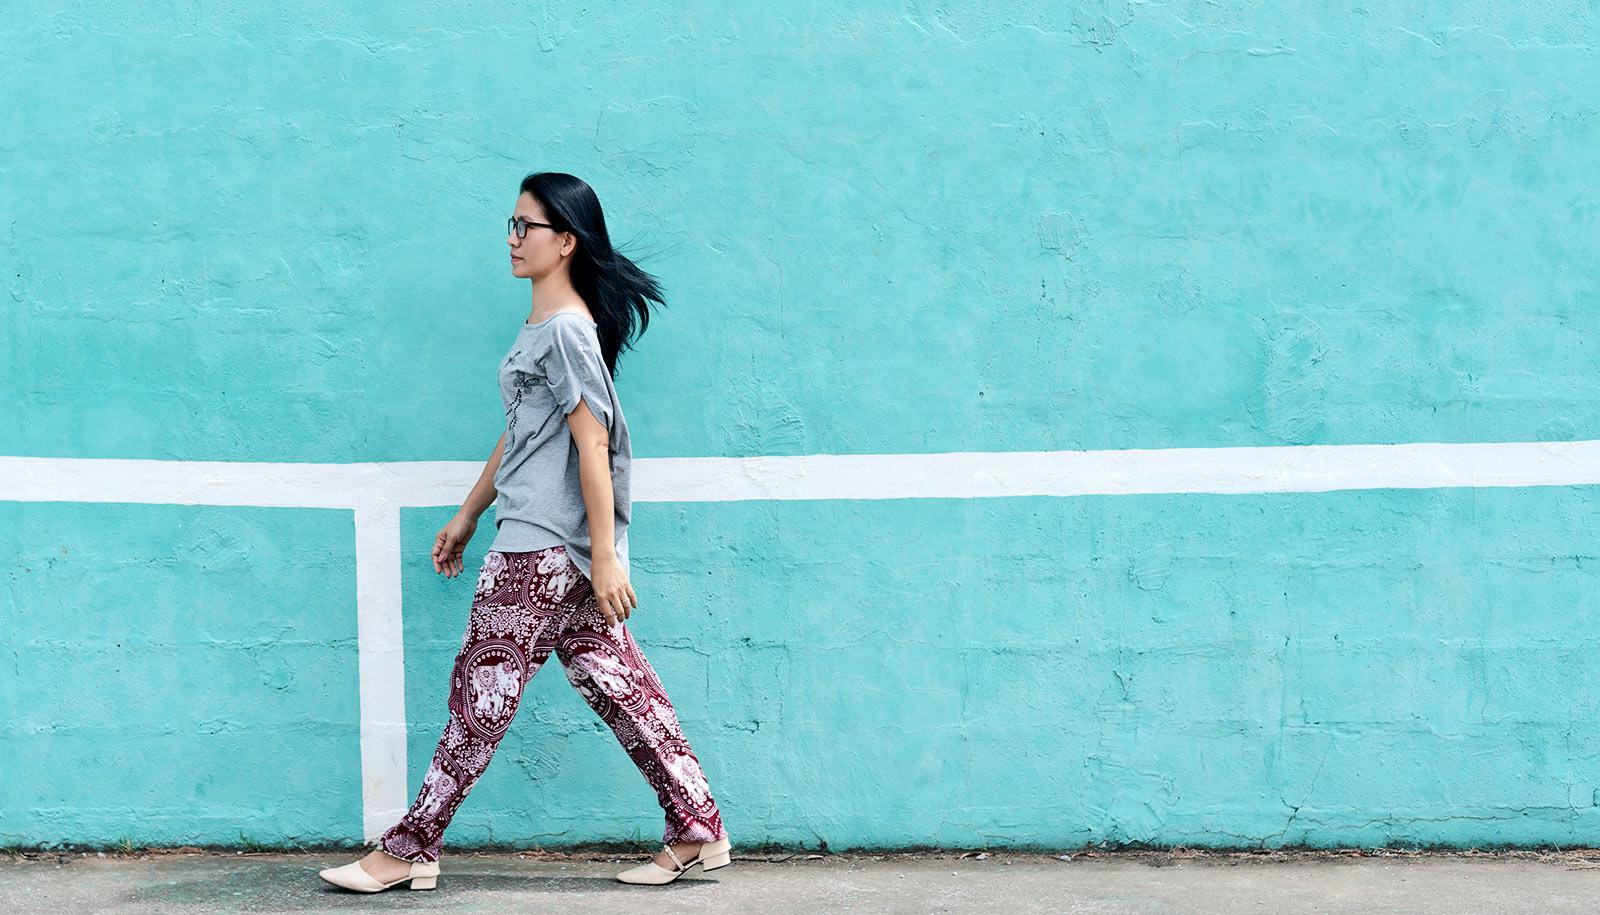 A woman in colorful pants walks against a light blue wall in profile